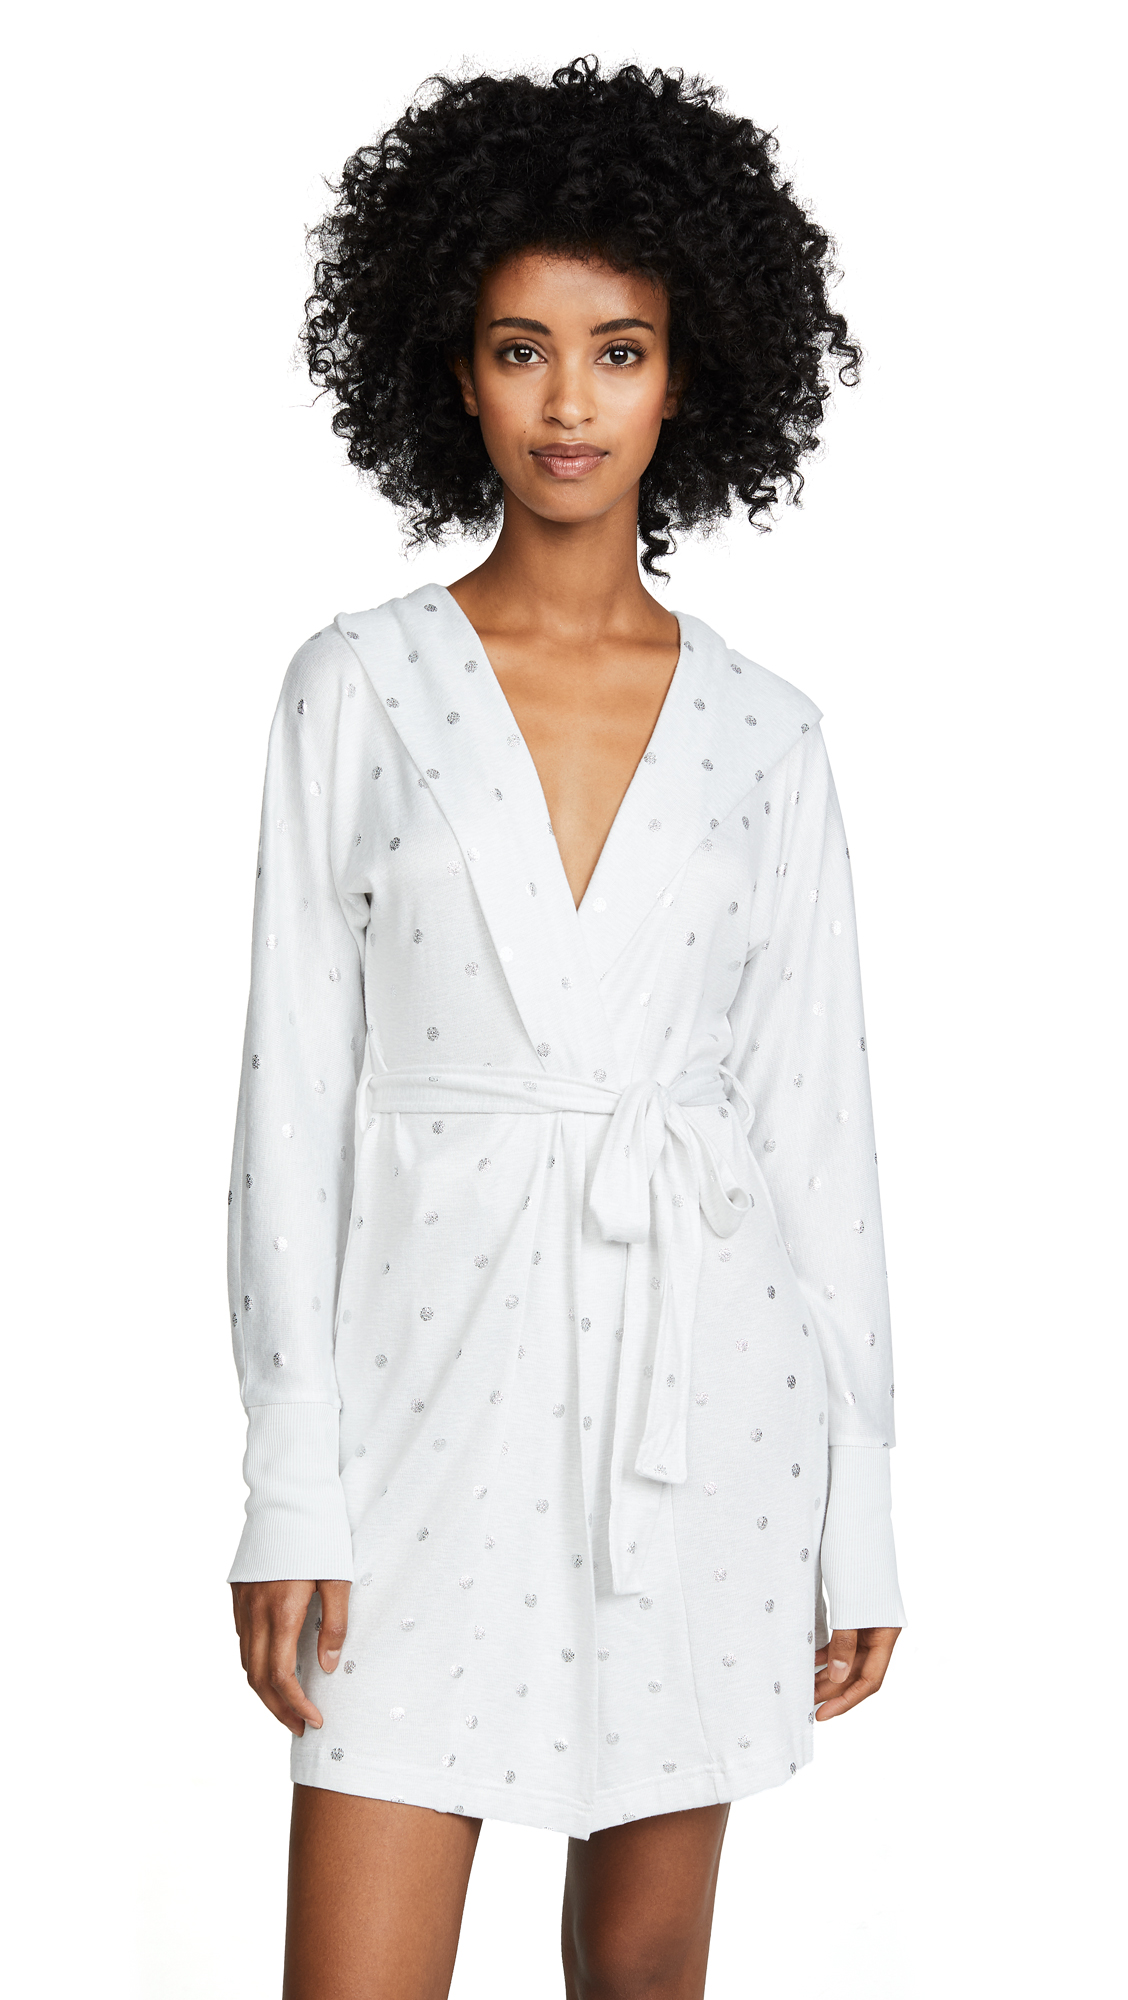 Emerson Road Polka Dot Robe In White